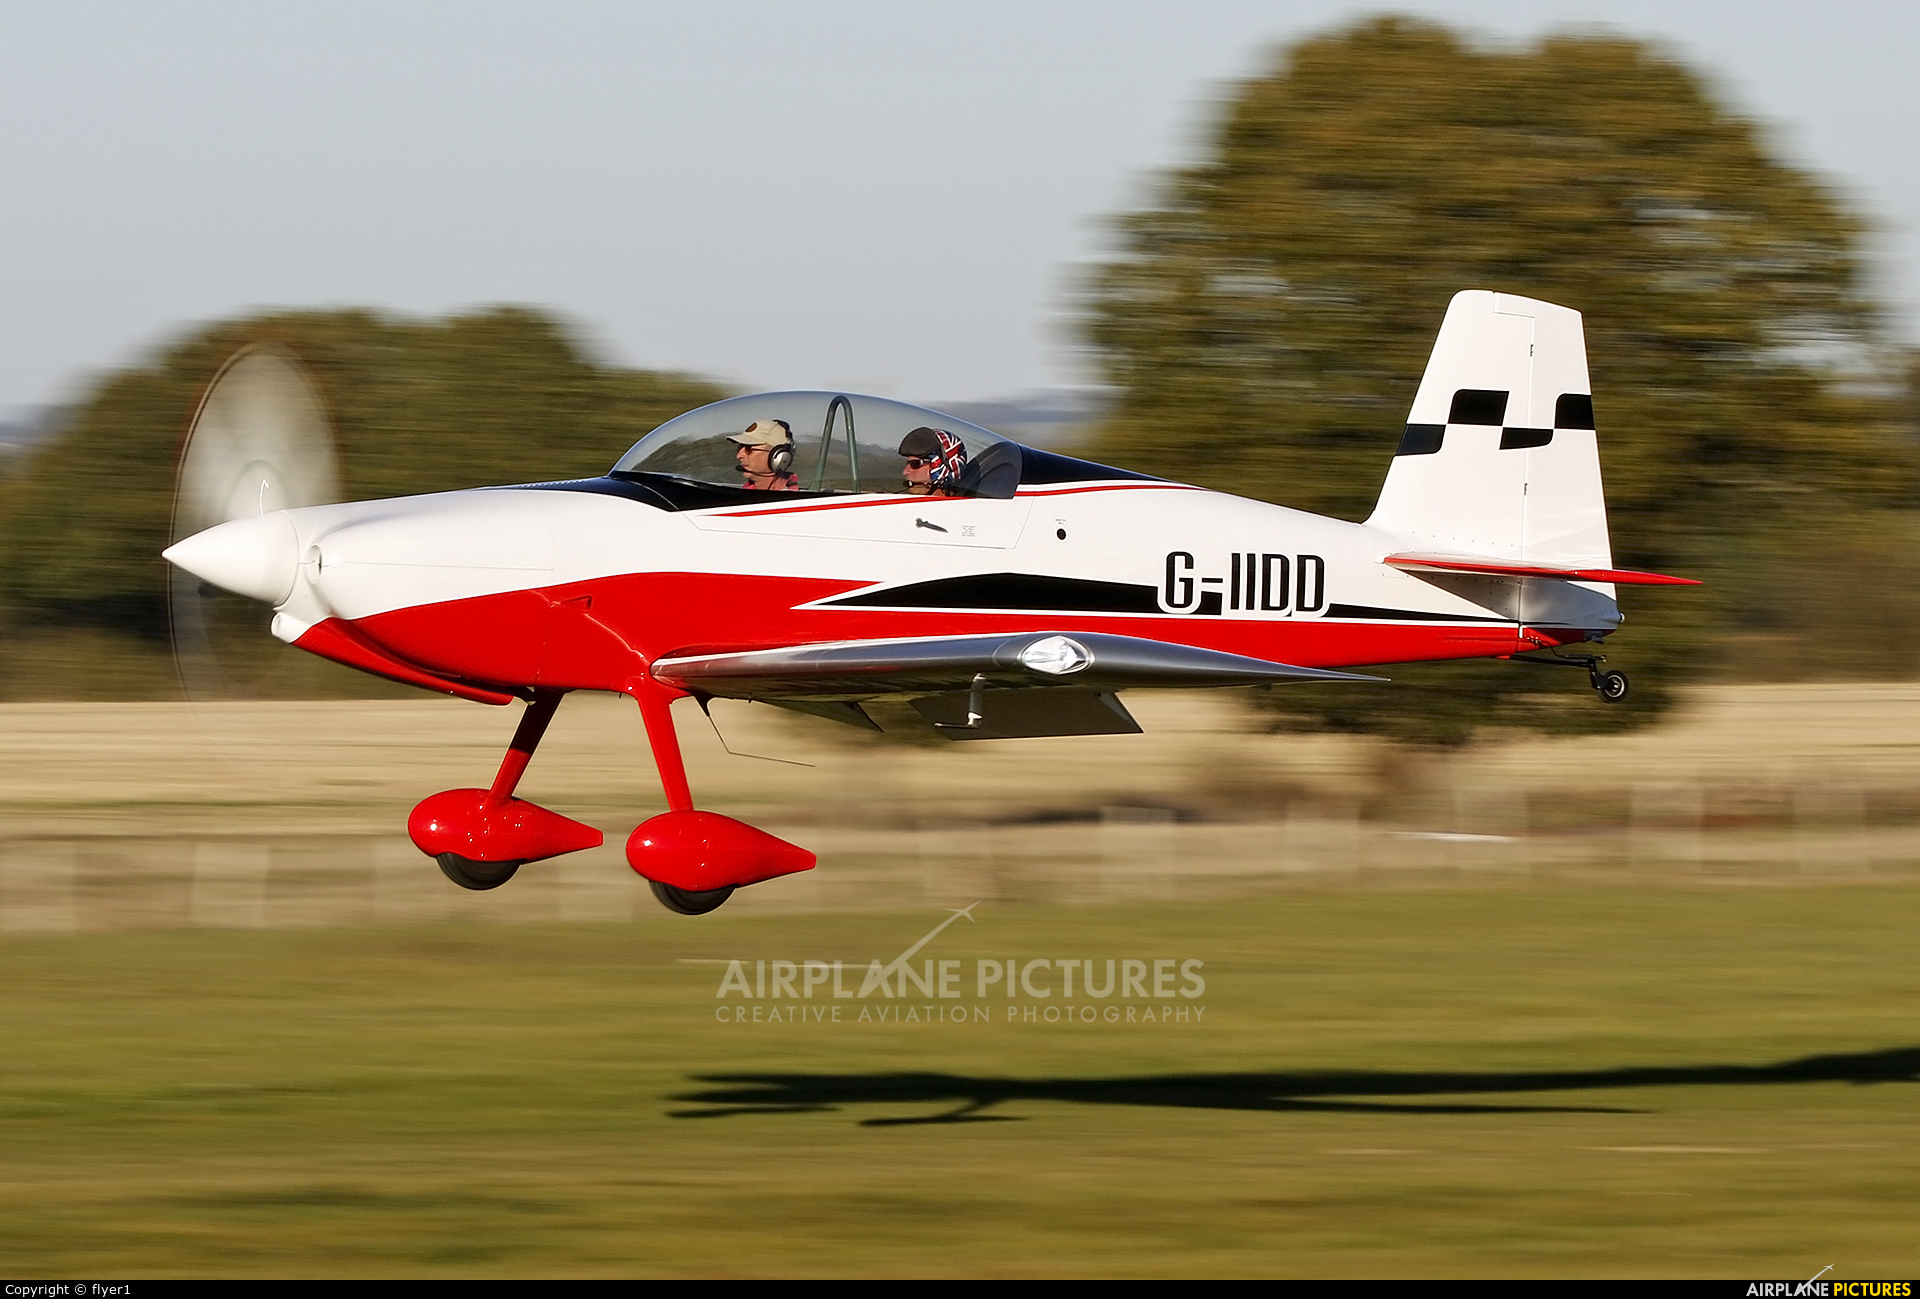 Private G-IIDD aircraft at Lashenden / Headcorn